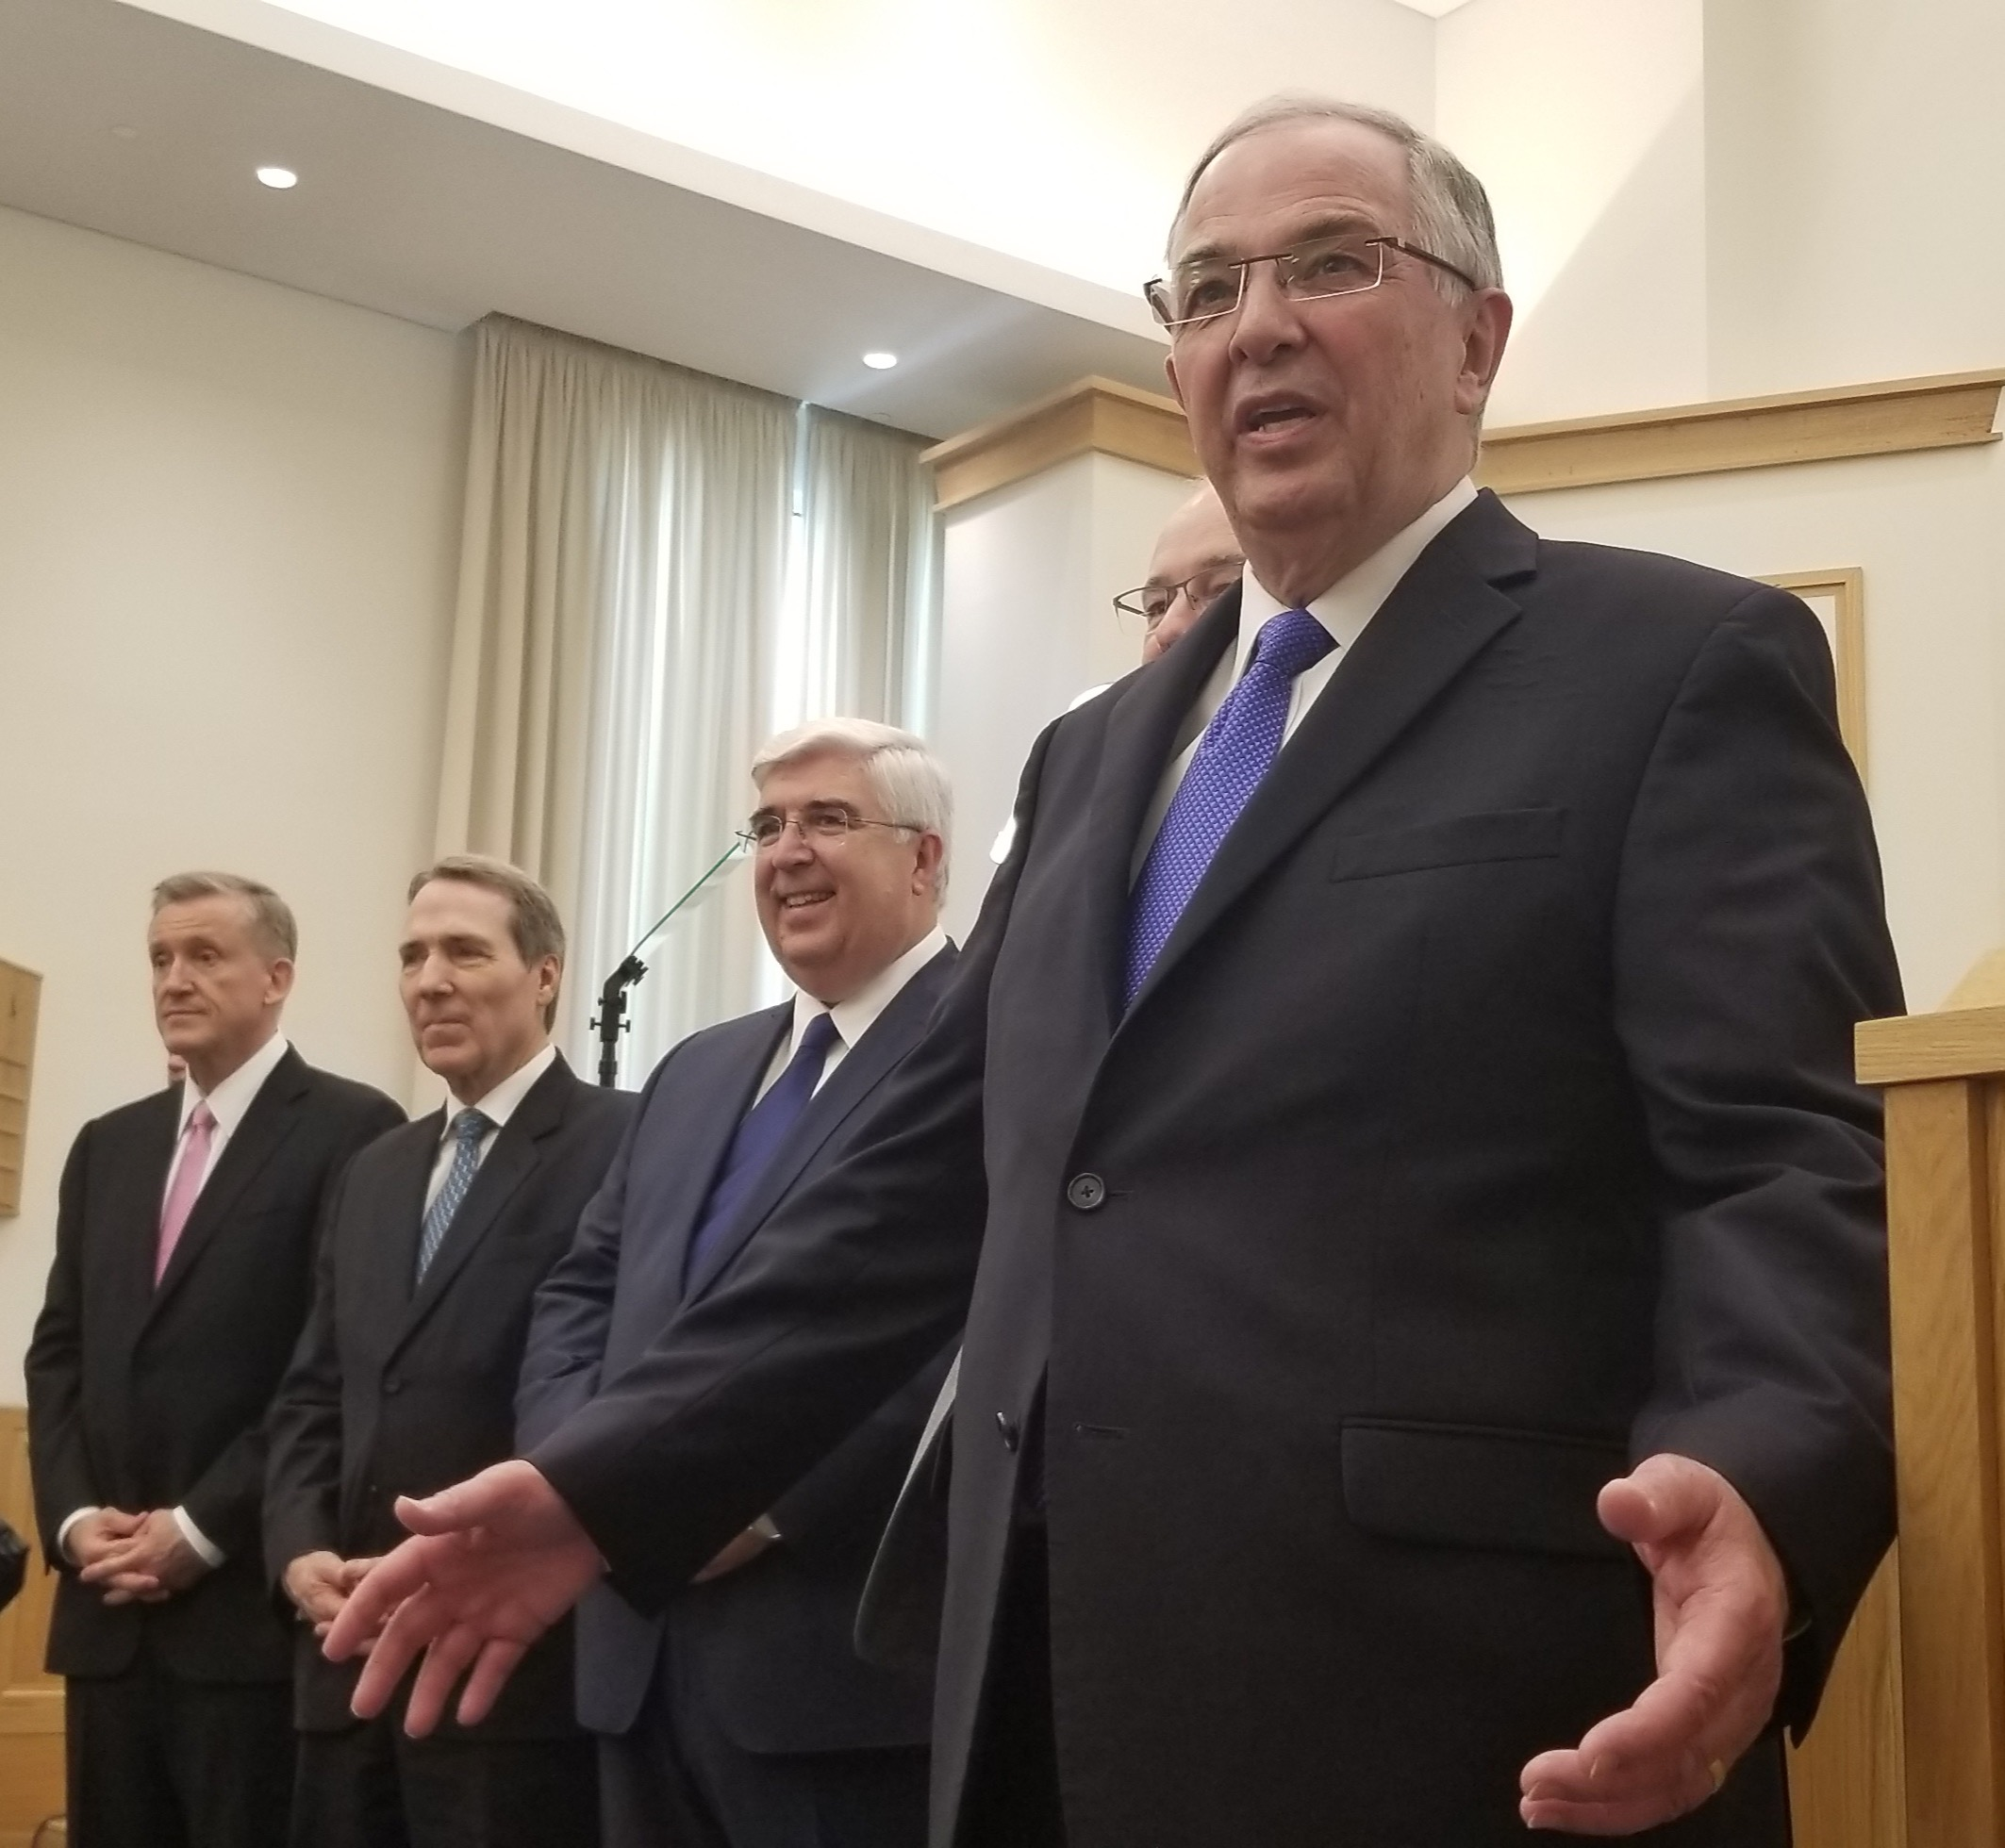 Elder Neil L. Andersen of the Quorum of the Twelve, right, gestures while speaking addressing missionaries of the Portugal Lisbon Mission prior to a Saturday, Sept. 14, 2019, meeting in Lisbon. He's joined by President Brent Fillmore of the mission, Elder José A. Teixeira, Elder Gary B. Sabin and Elder Kevin R. Duncan.